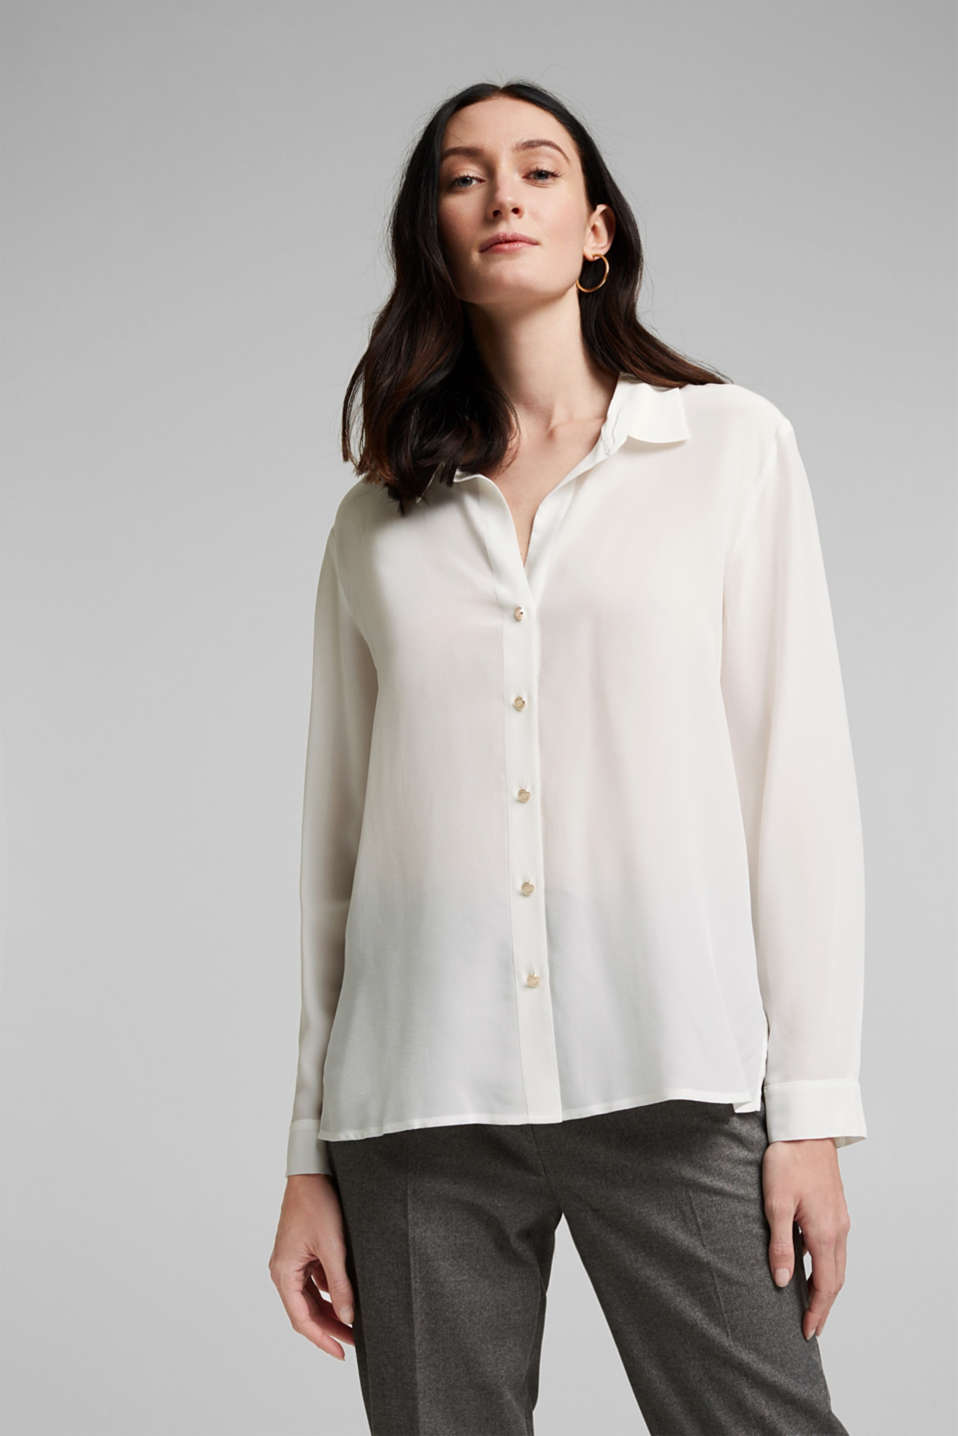 Esprit - Made of blended silk: shirt-style blouse